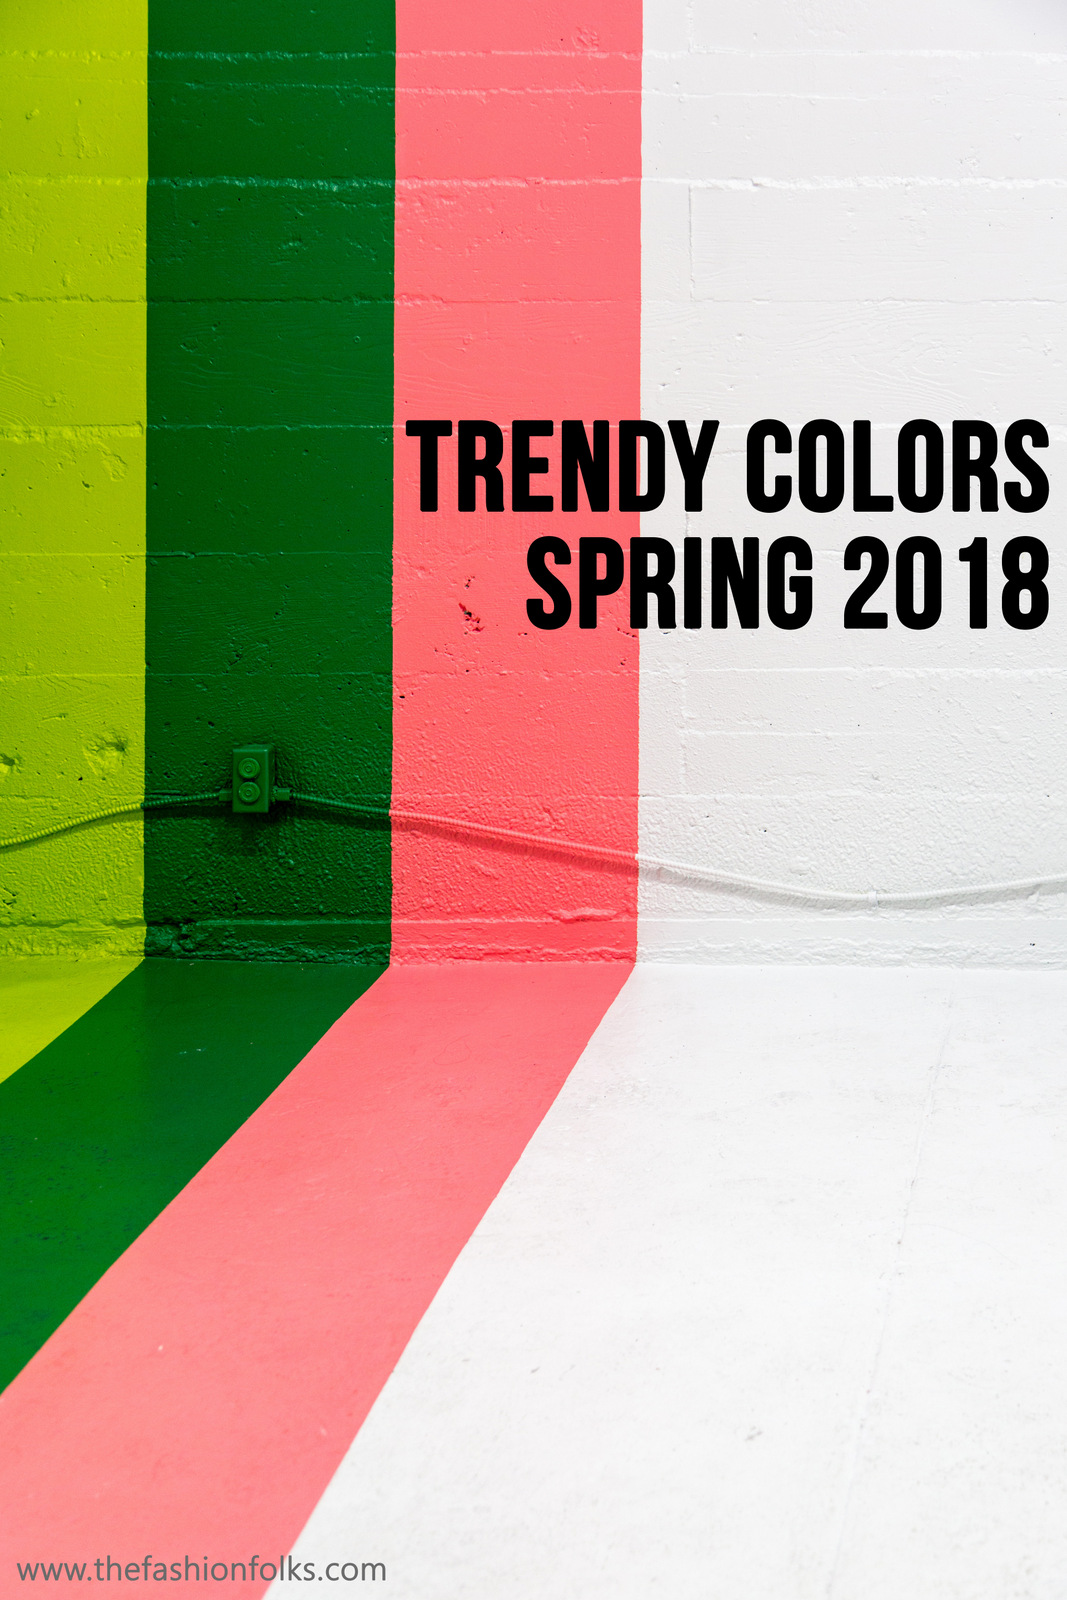 Trendy Colors Spring 2018